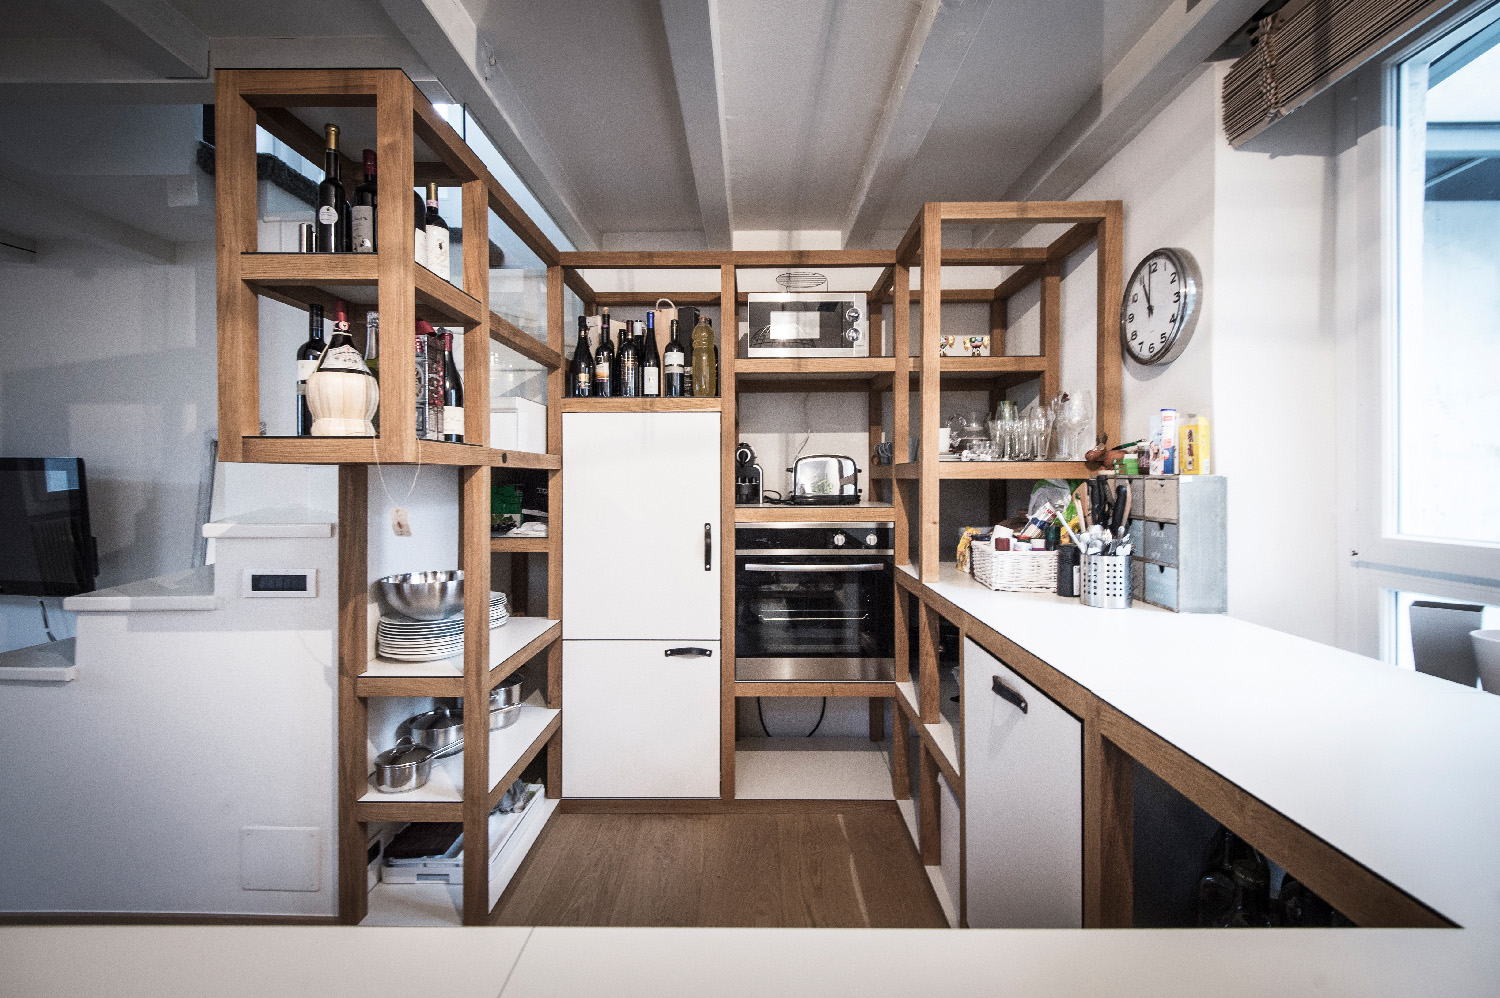 extraordinary modular kitchen Alex Filz